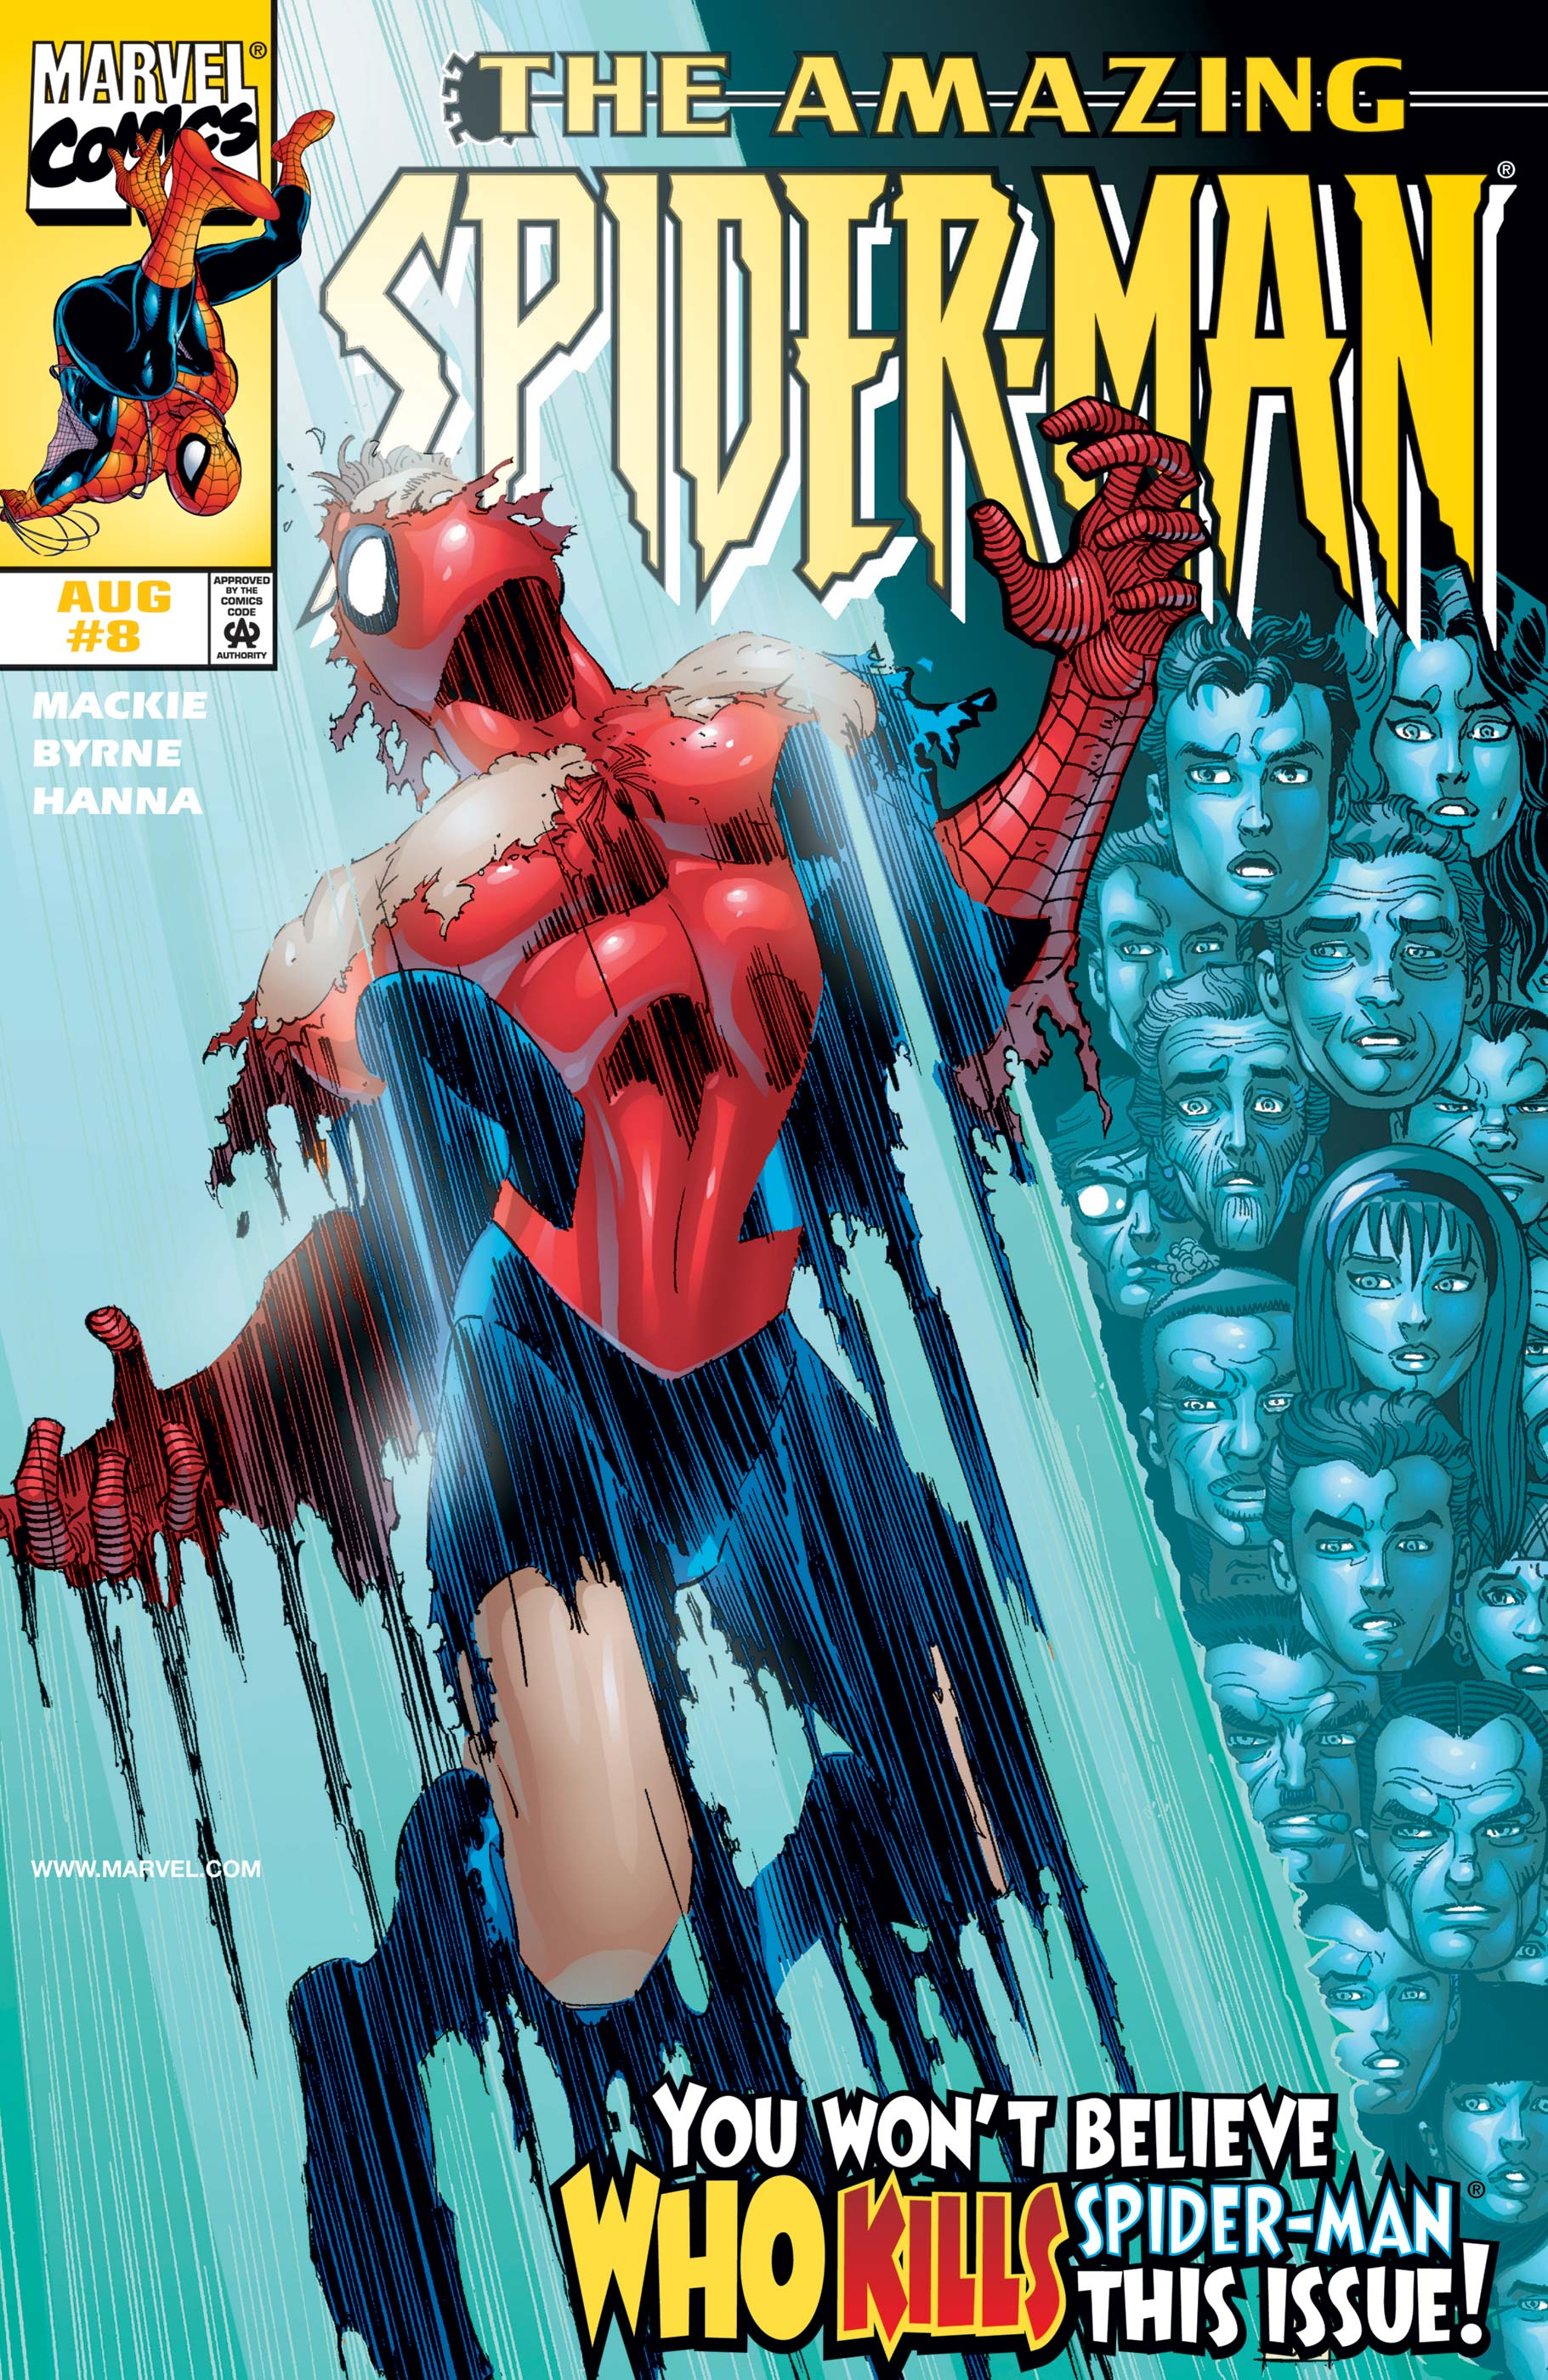 Amazing Spider-Man (1999) #8